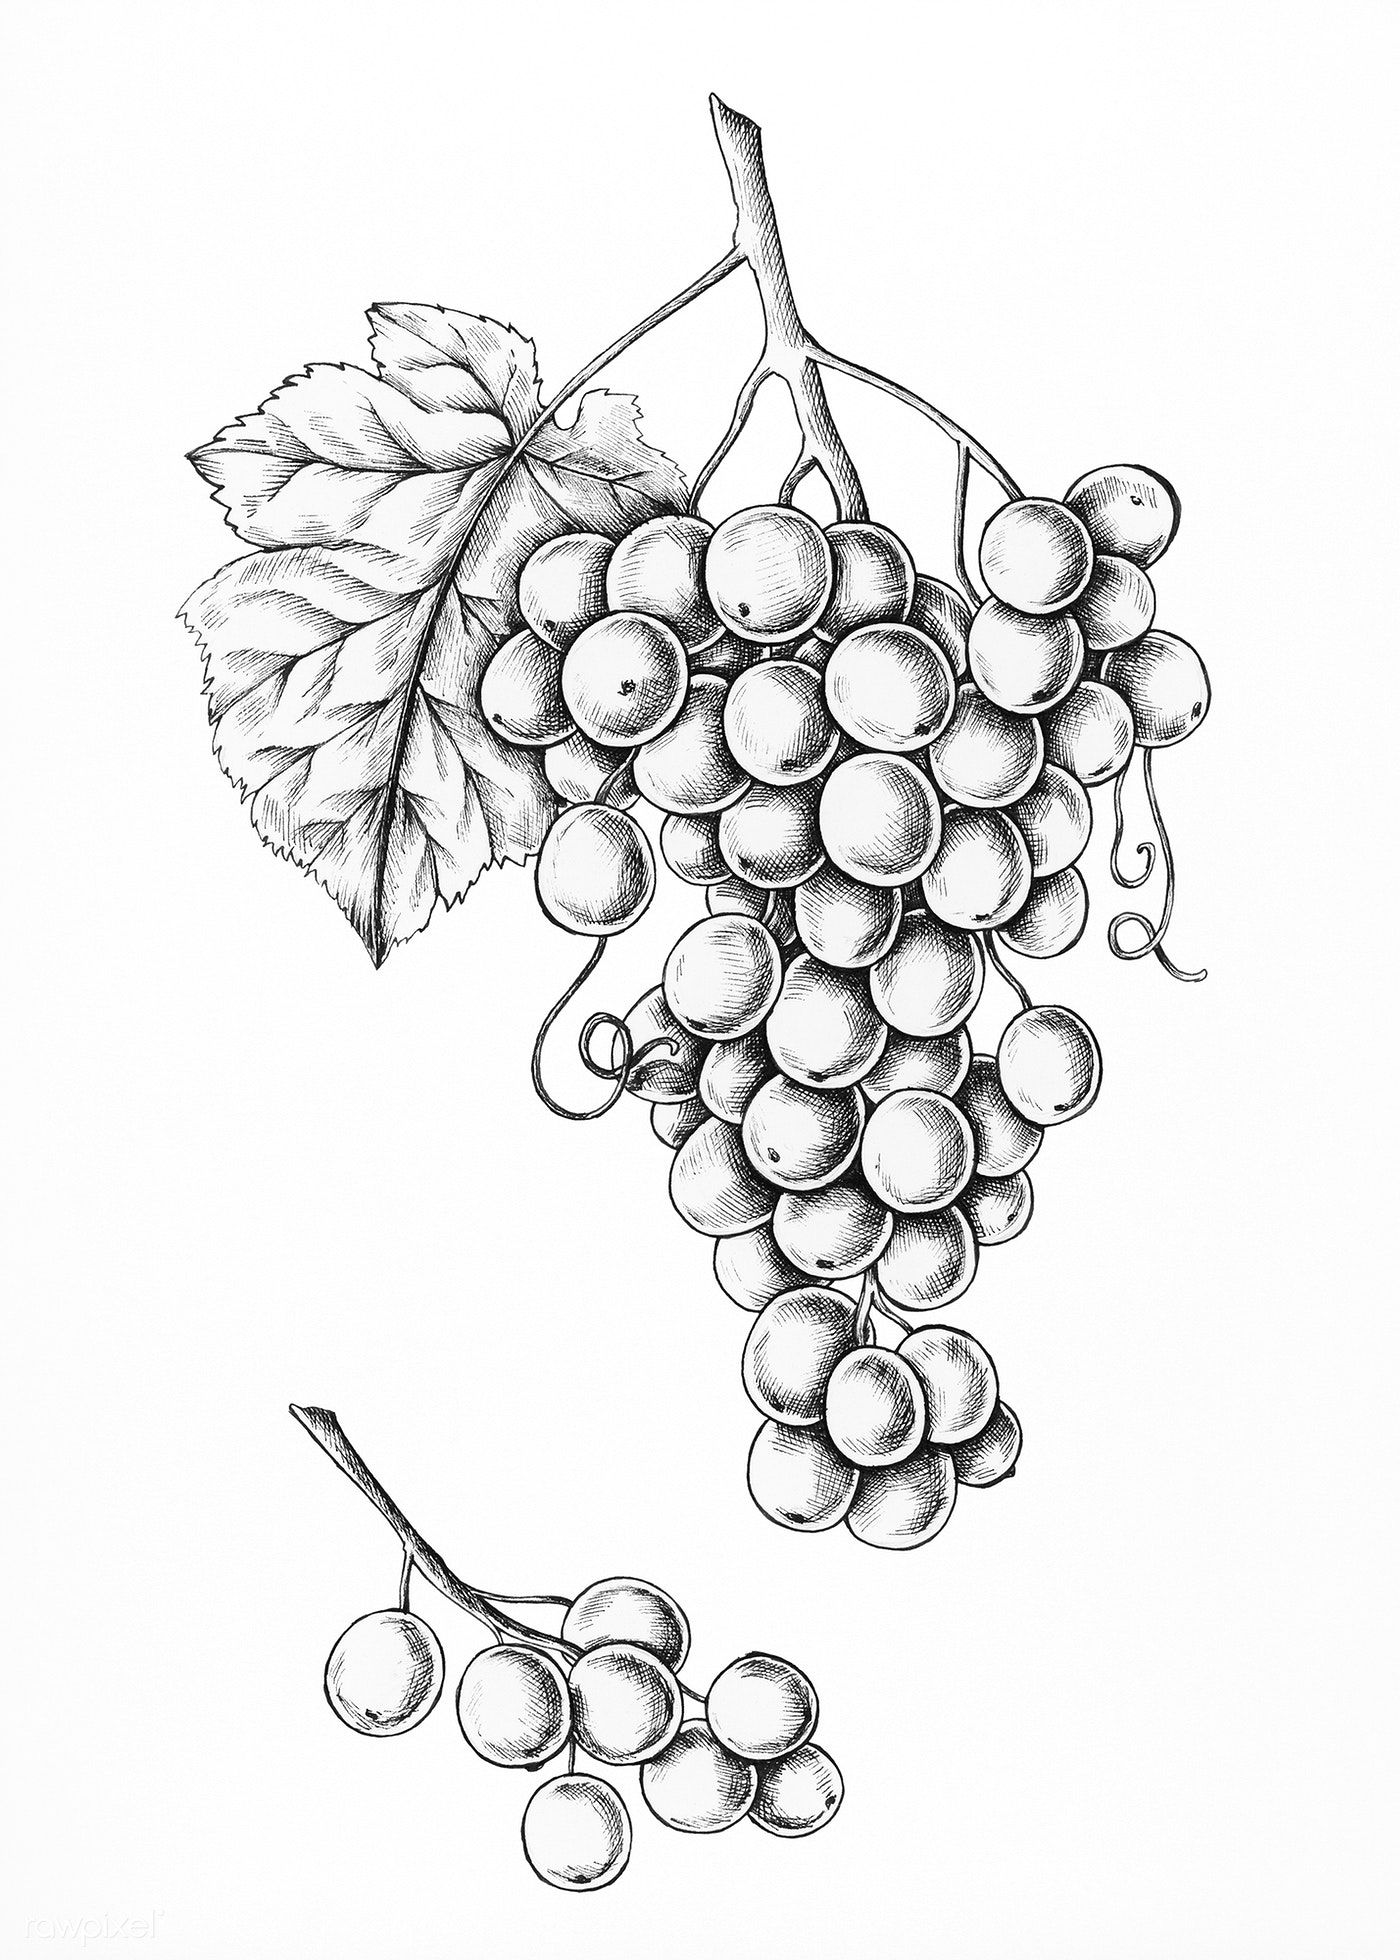 grapes drawing how to draw grapes with colored pencils grapes drawing